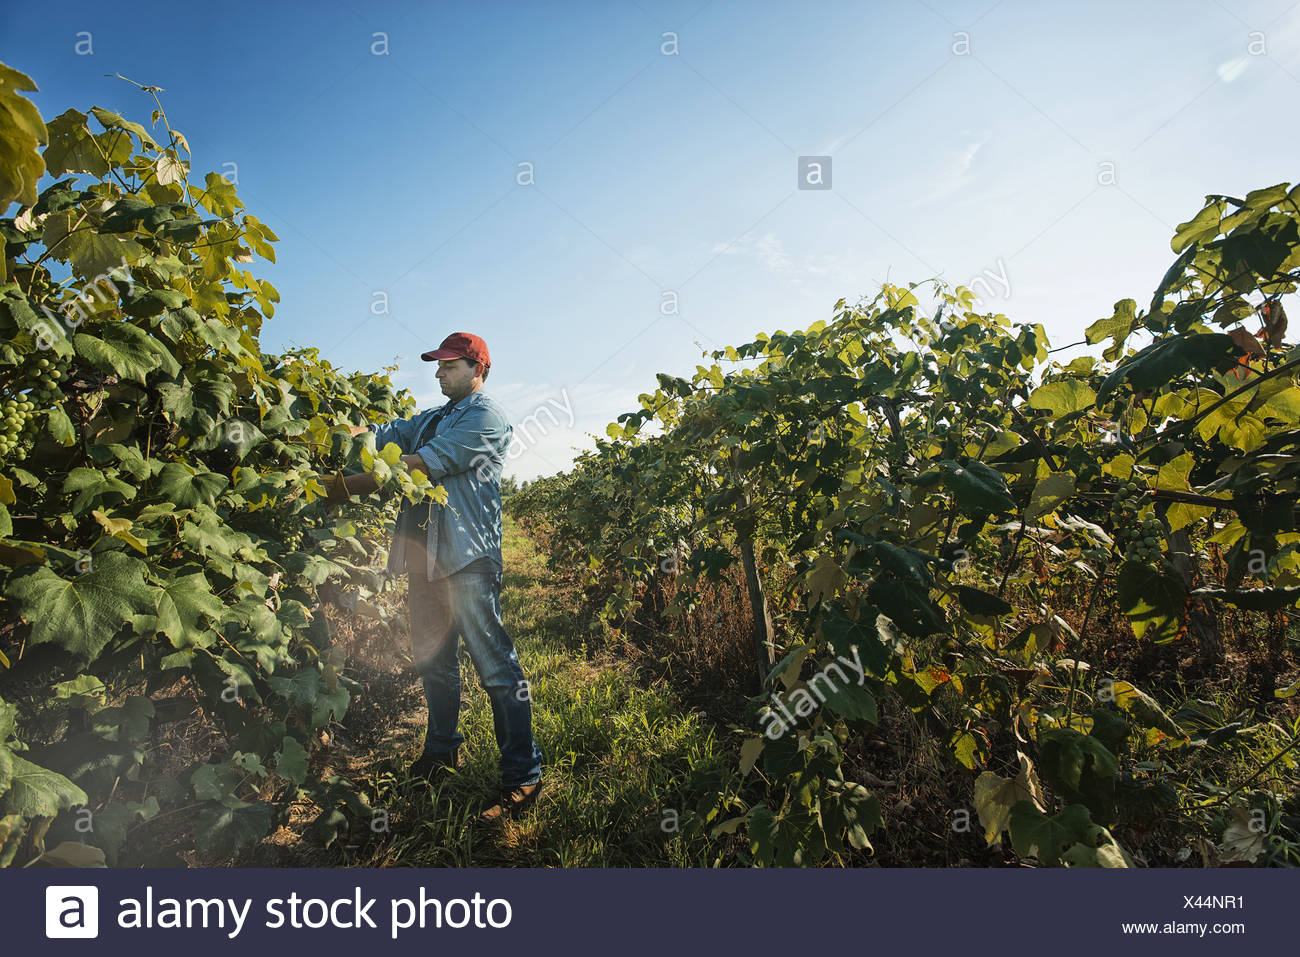 New York state USA man grape vines vineyard pruning tying shoots in - Stock Image